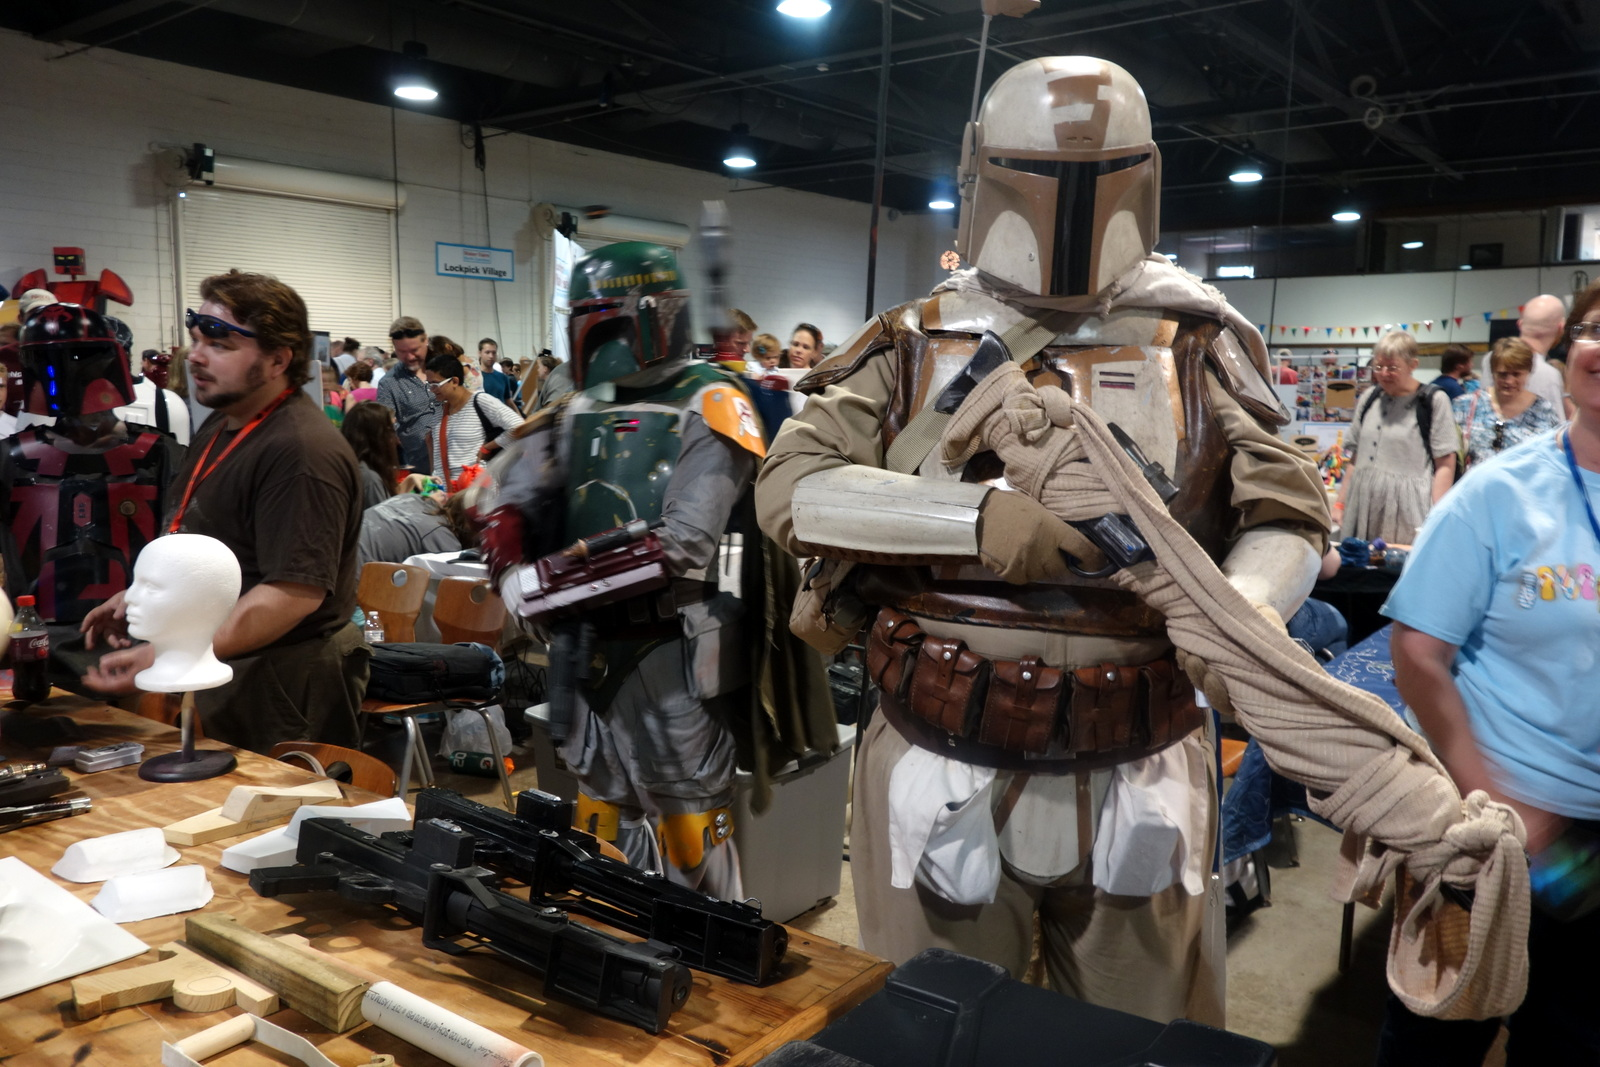 An Incredible Visual Tour of the 4th annual Maker Faire North Carolina